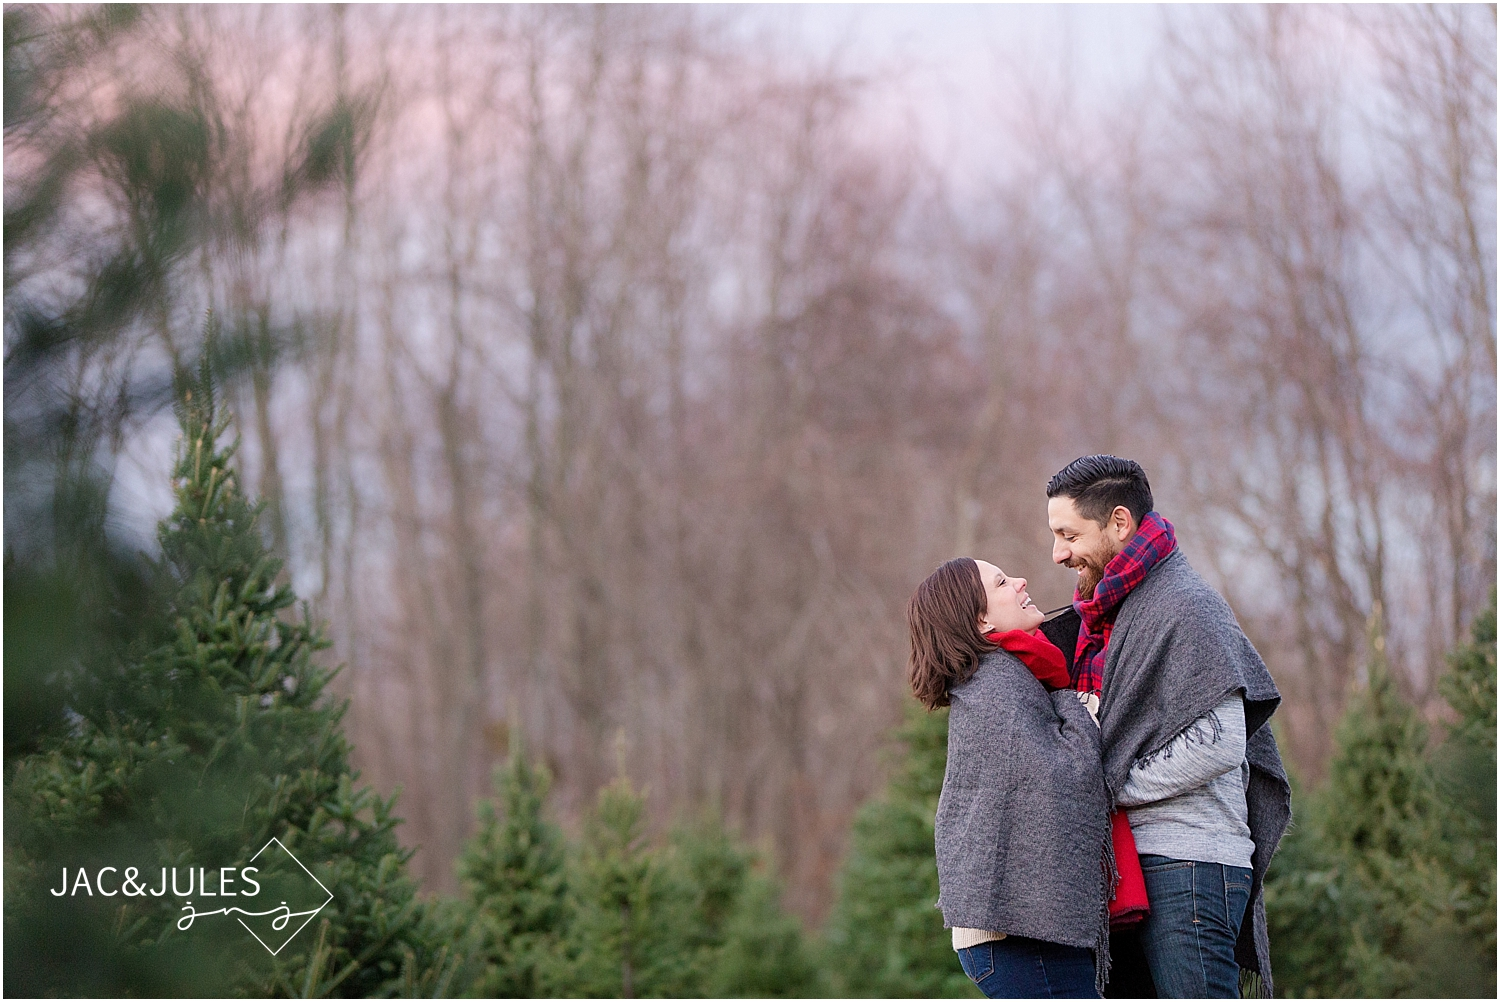 jacnjules photographs holiday engagement at lone silo tree farm in NJ